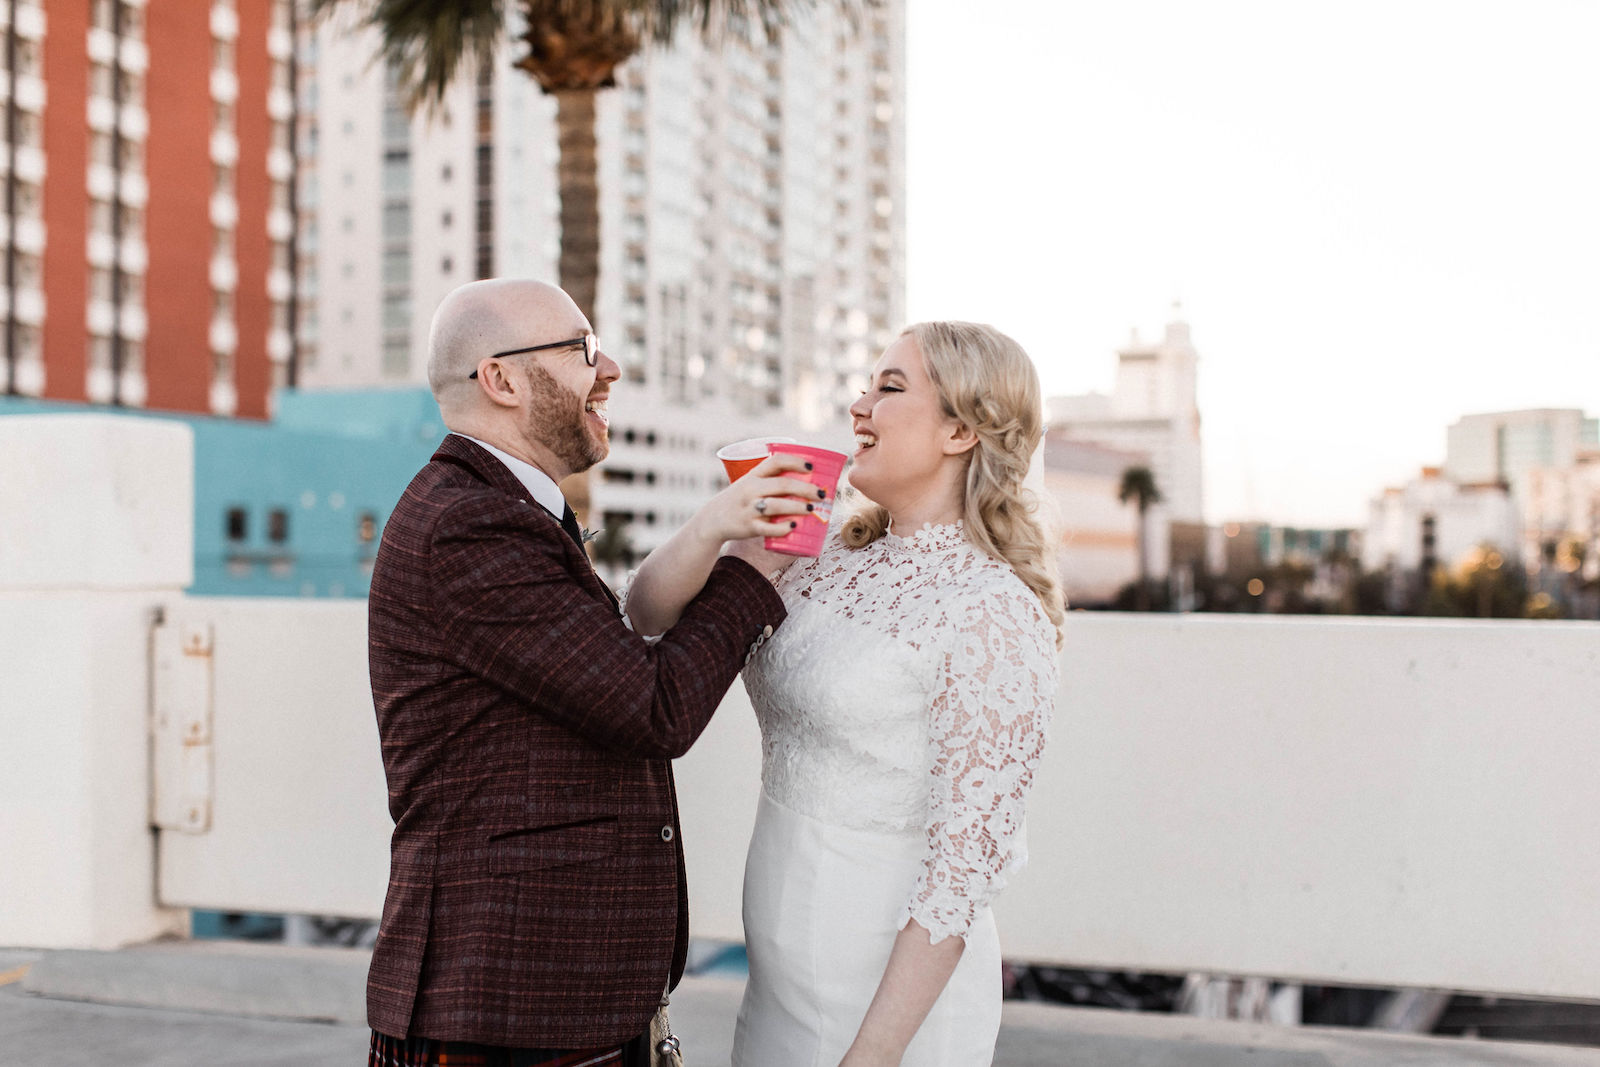 las vegas elopement rooftop downtown las vegas wedding00016.jpg